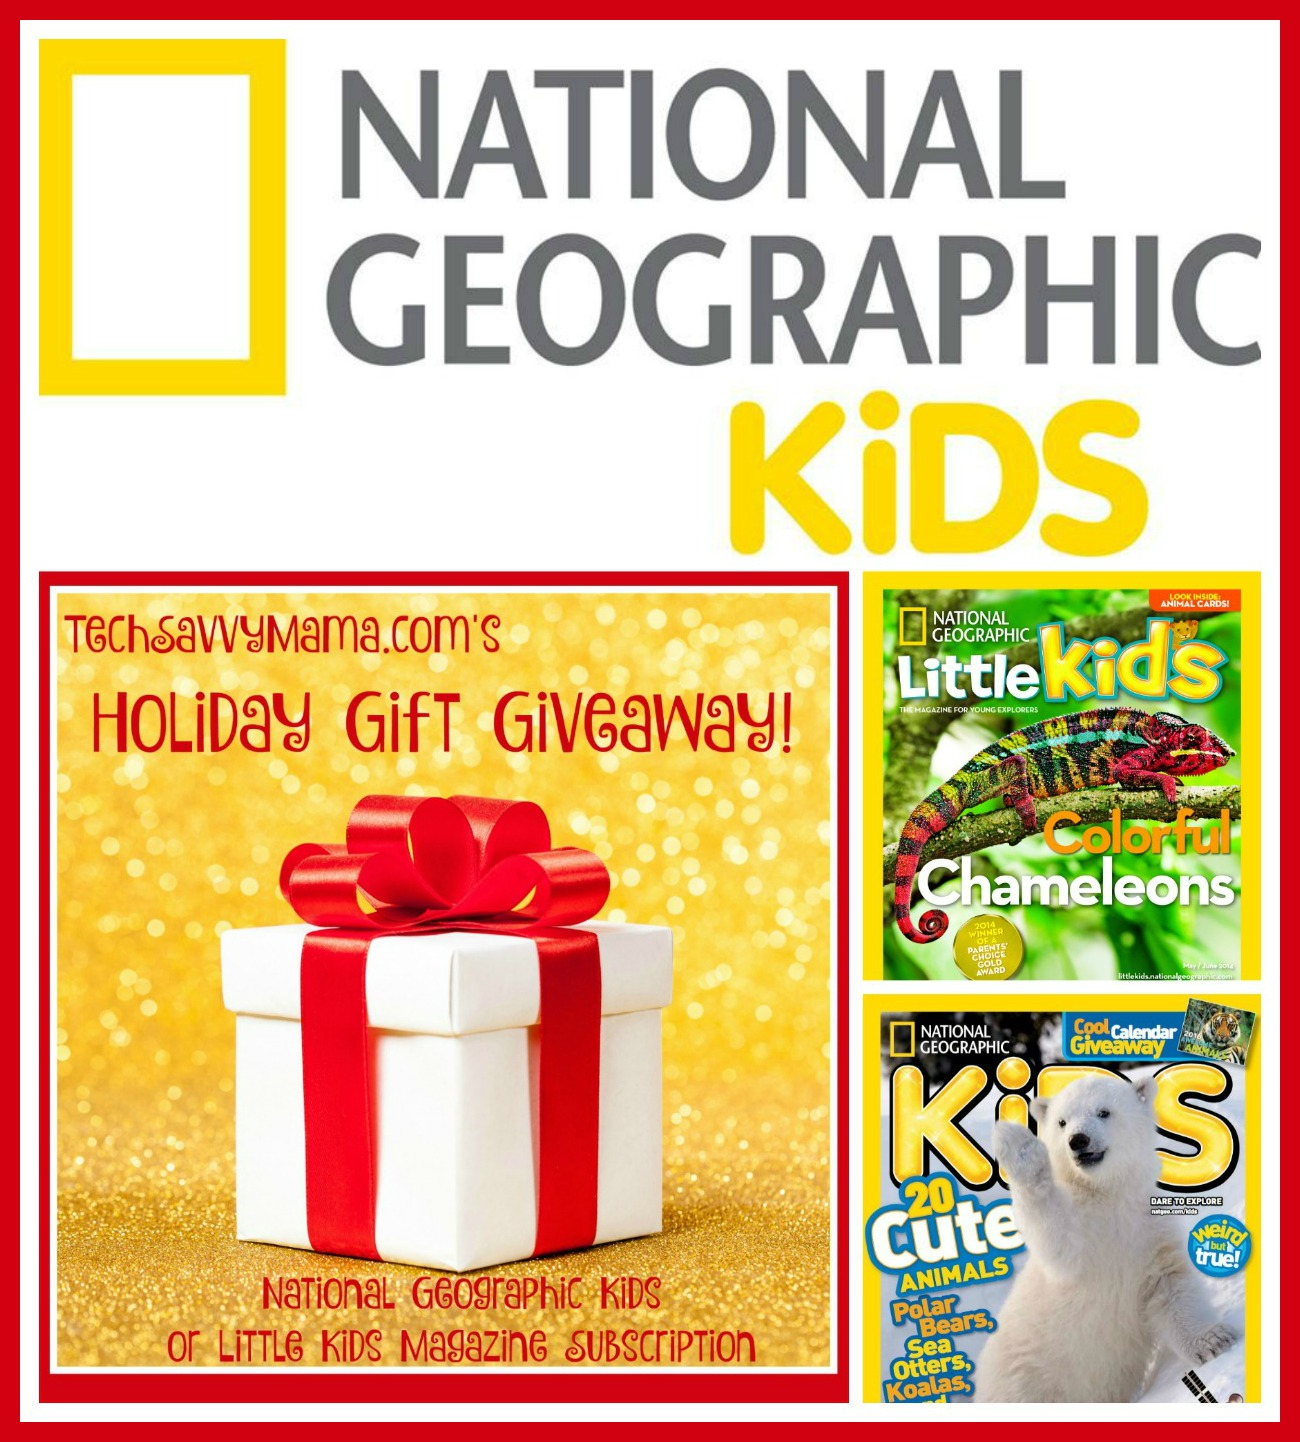 GIVEAWAY: National Geographic Kids or Little Kids Magazine Subscription